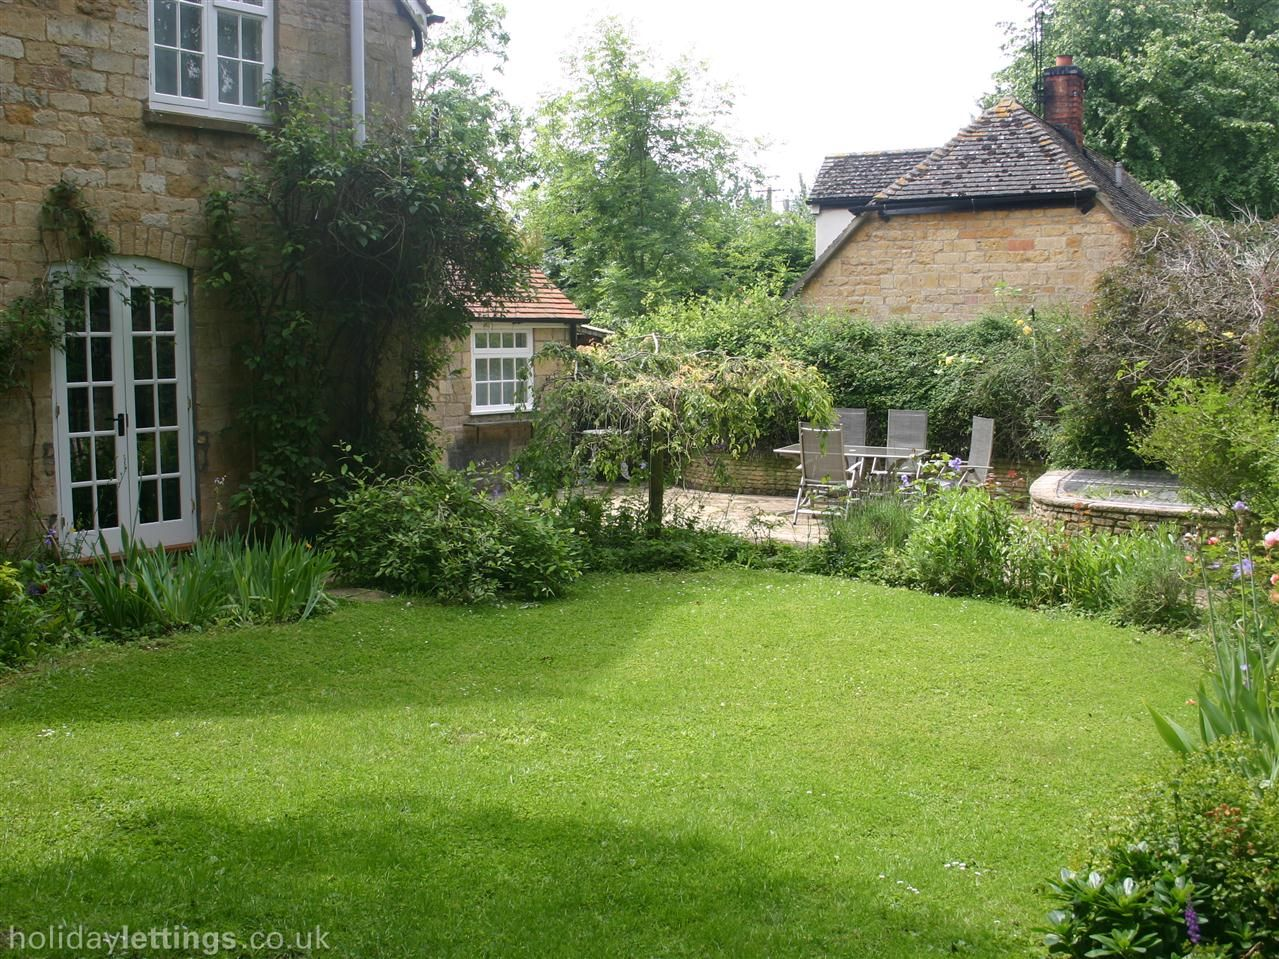 2 bedroom cottage in chipping campden to rent from 455 pw with log rh pinterest com